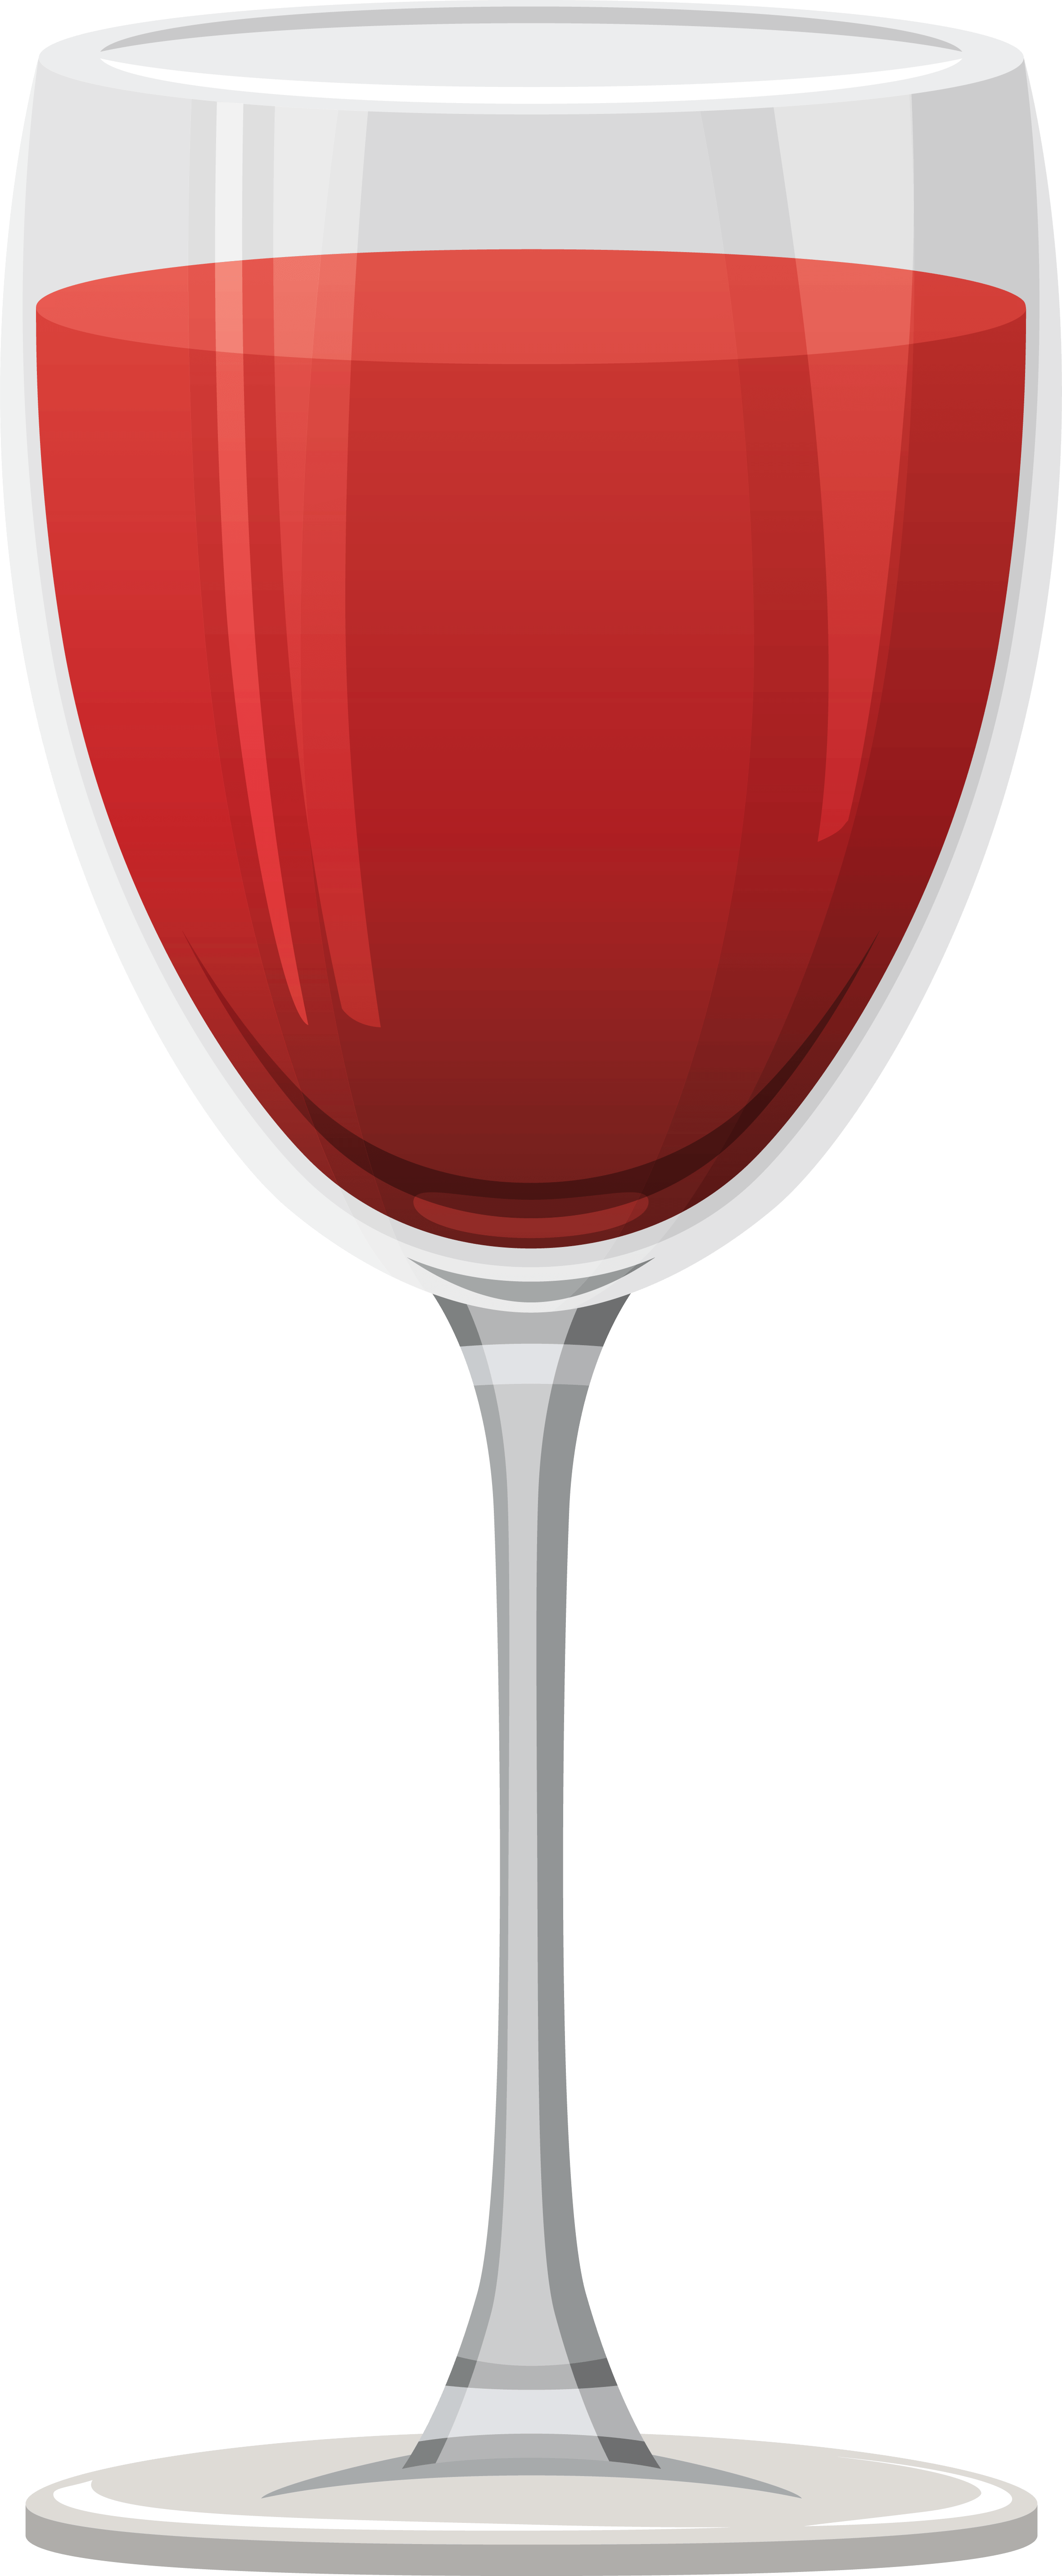 Wine glass with dog ears clipart svg royalty free download Download Red Wine Glass Png Image HQ PNG Image | FreePNGImg svg royalty free download